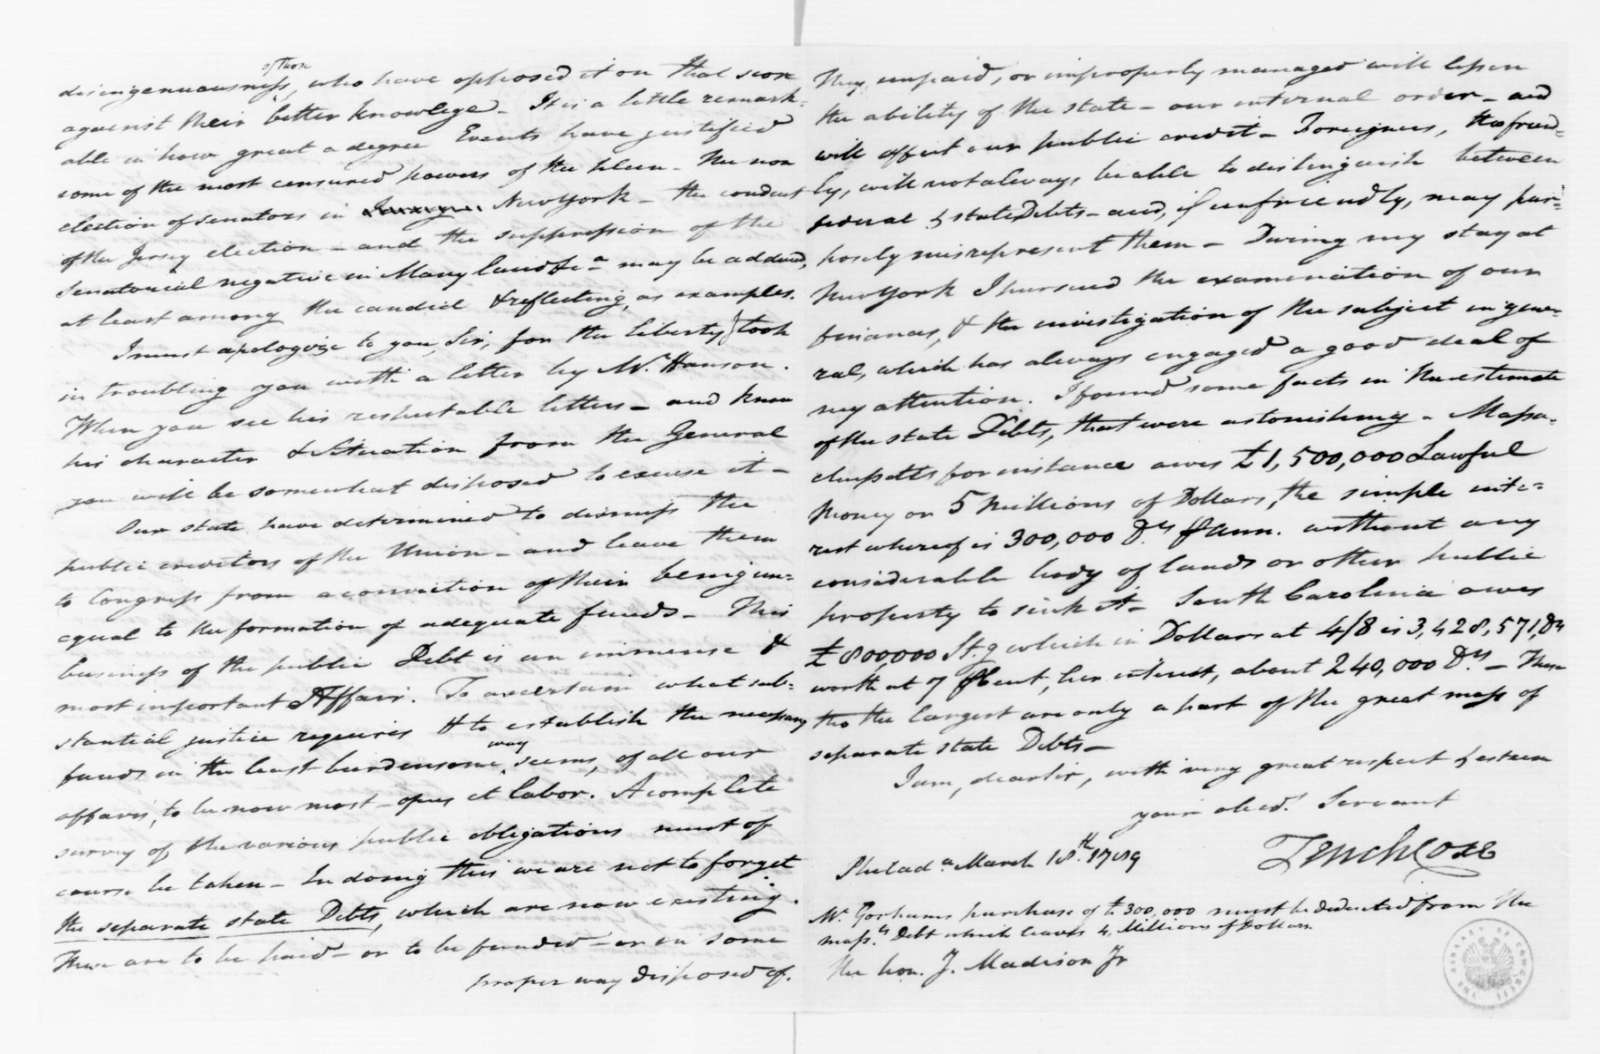 Tench Coxe to James Madison, March 18, 1789.